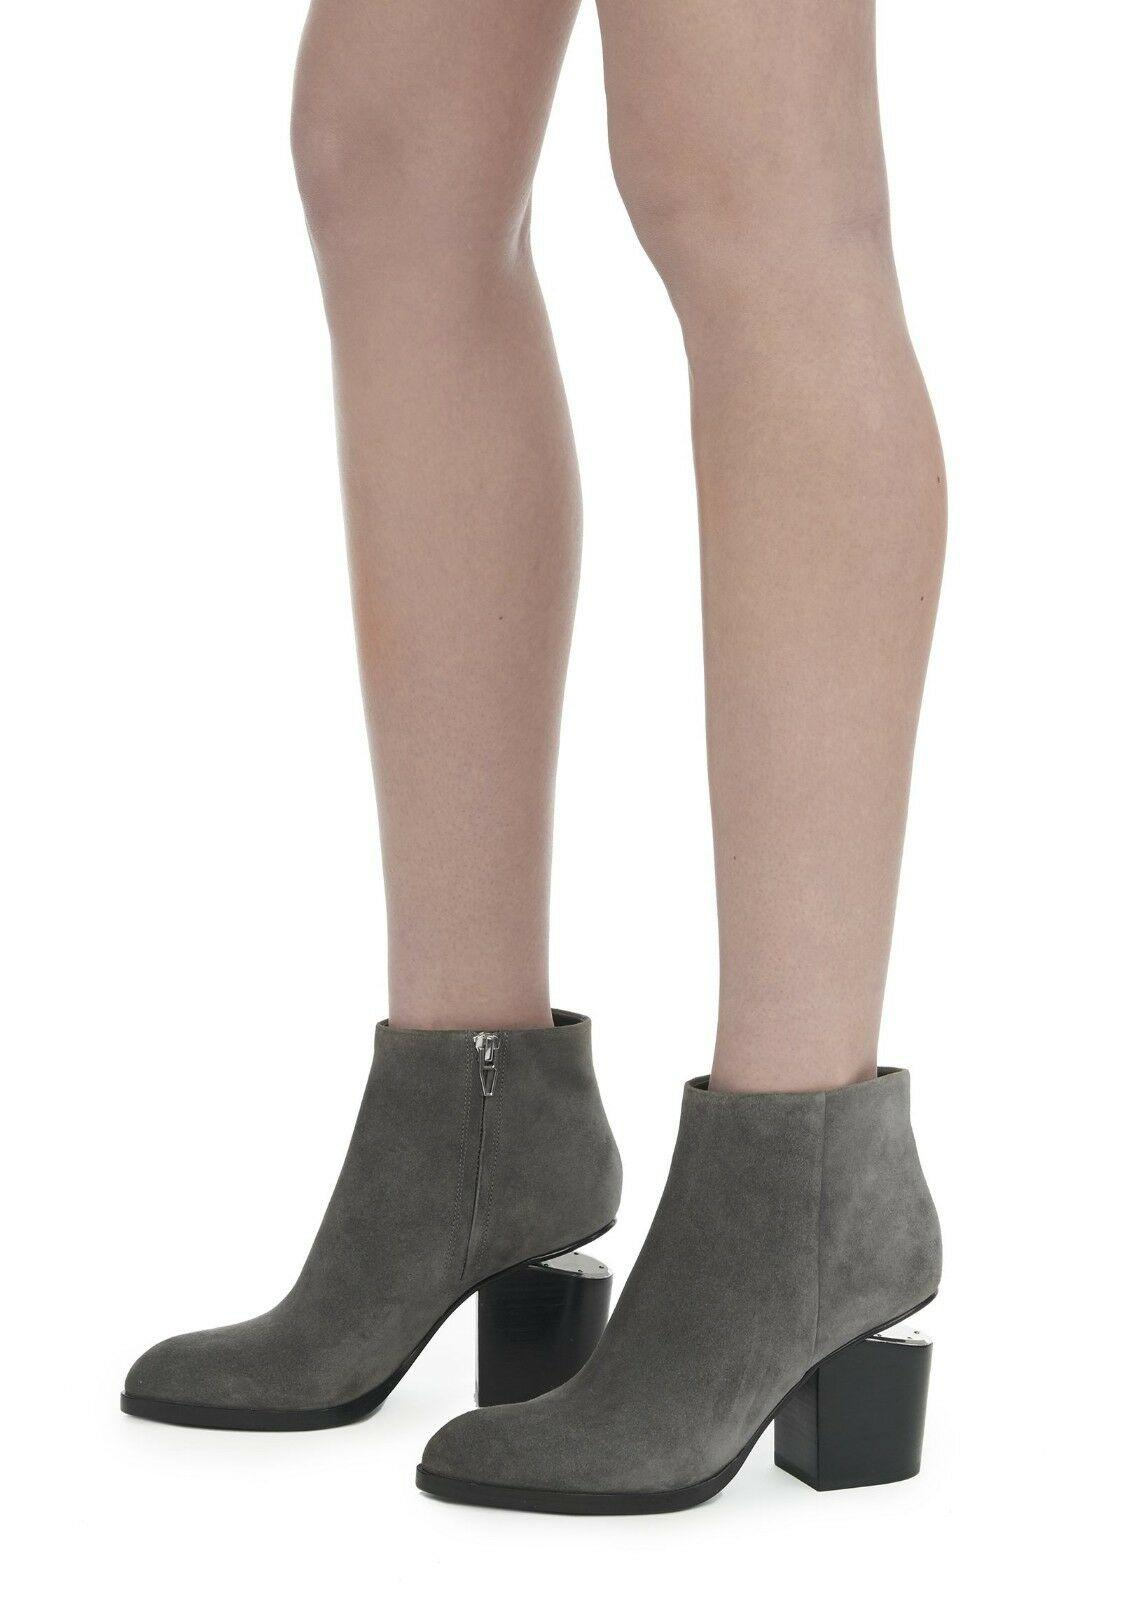 Alexander Wang GABI Gray Suede Boots With Rhodium Ankle Booties 39.5- 9...